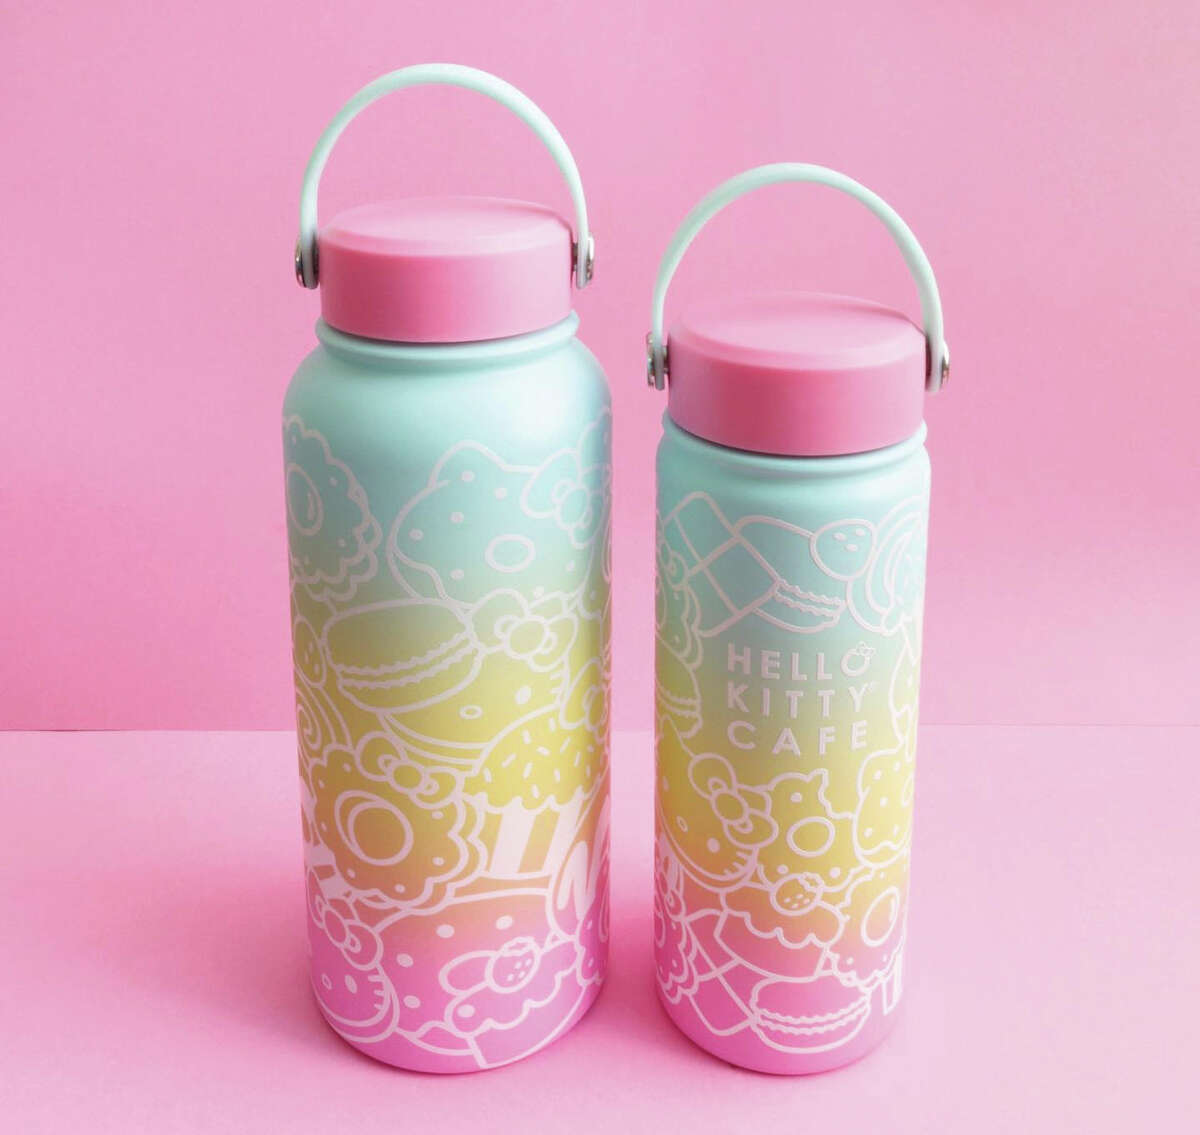 Stainless steel thermal bottle, $32 for 18-ounce or $39 for 32-ounce